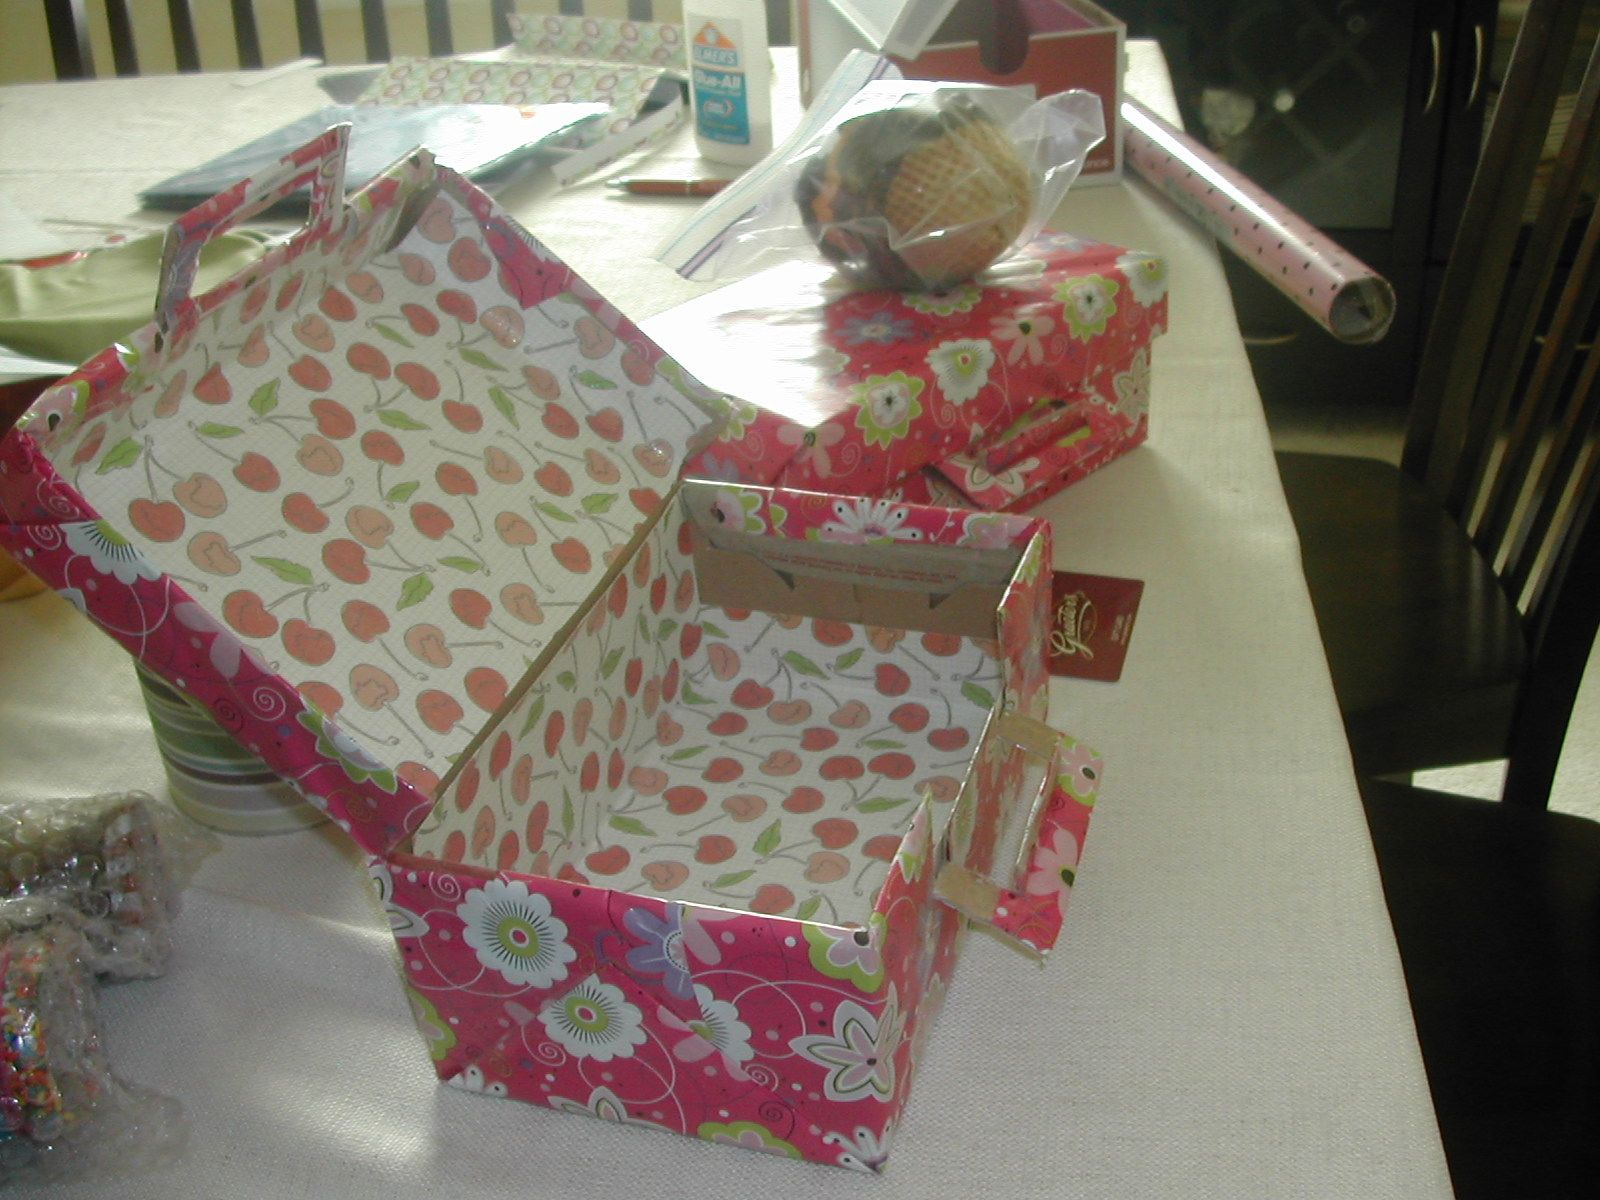 Recycled  shoebox into a giftbox